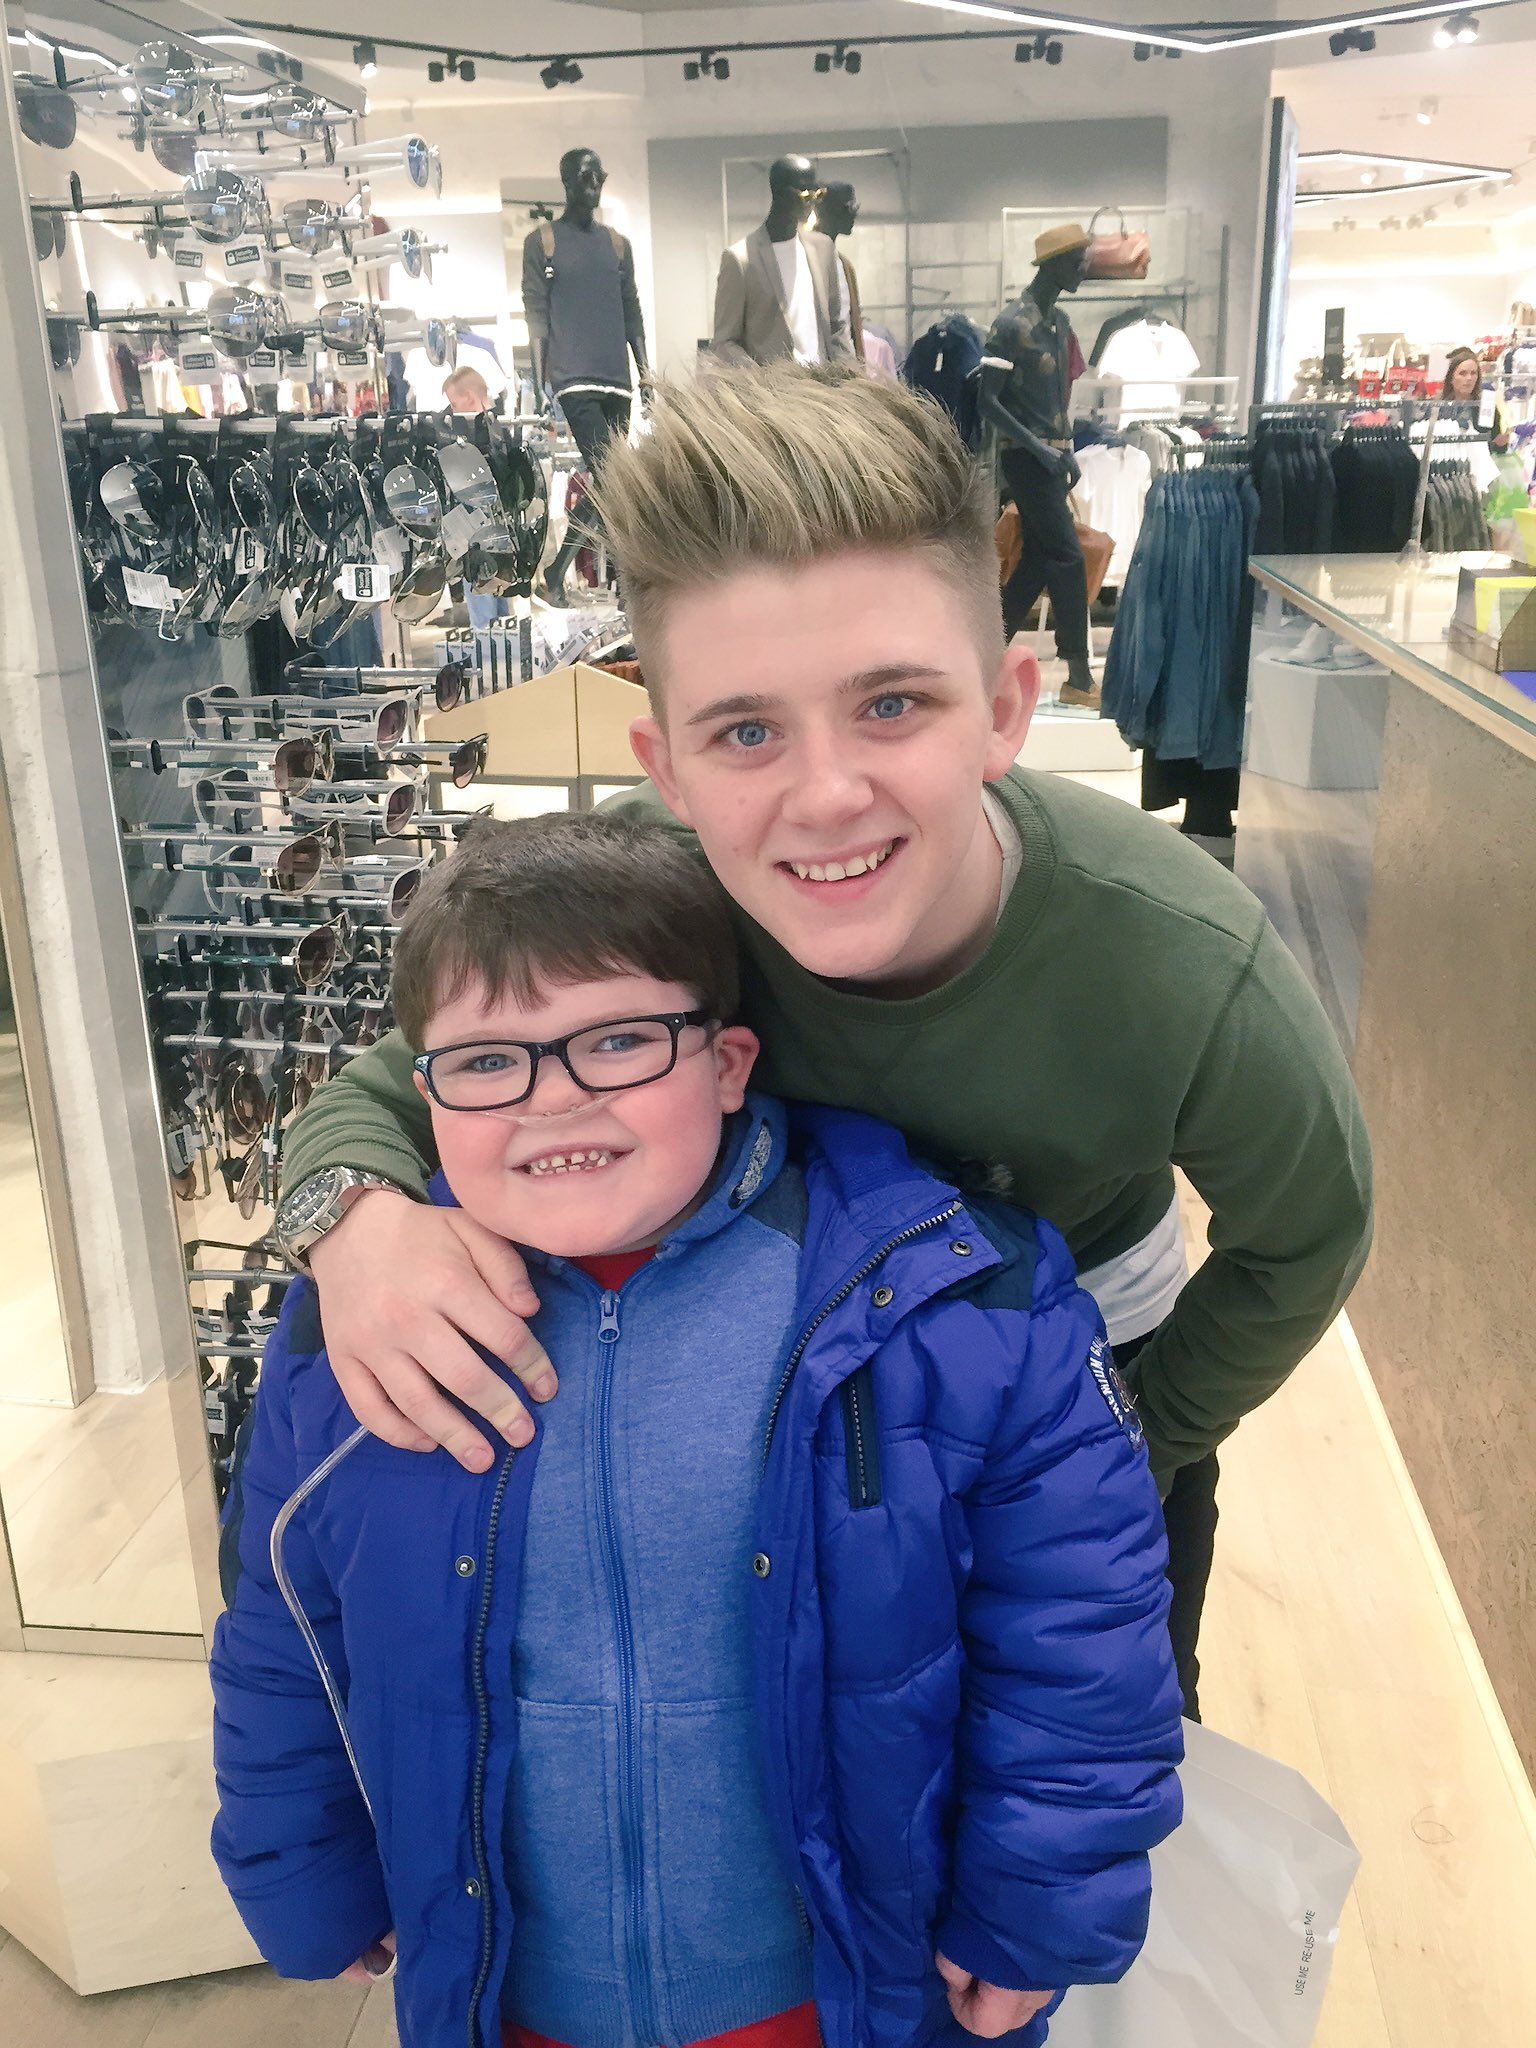 RT @gomadforrohhad: @nickymcdonald1 Aaron loved meeting u today and saying hi! He can't wait for your #GOMADJumpForROHHAD challenge 😀 TY ht…